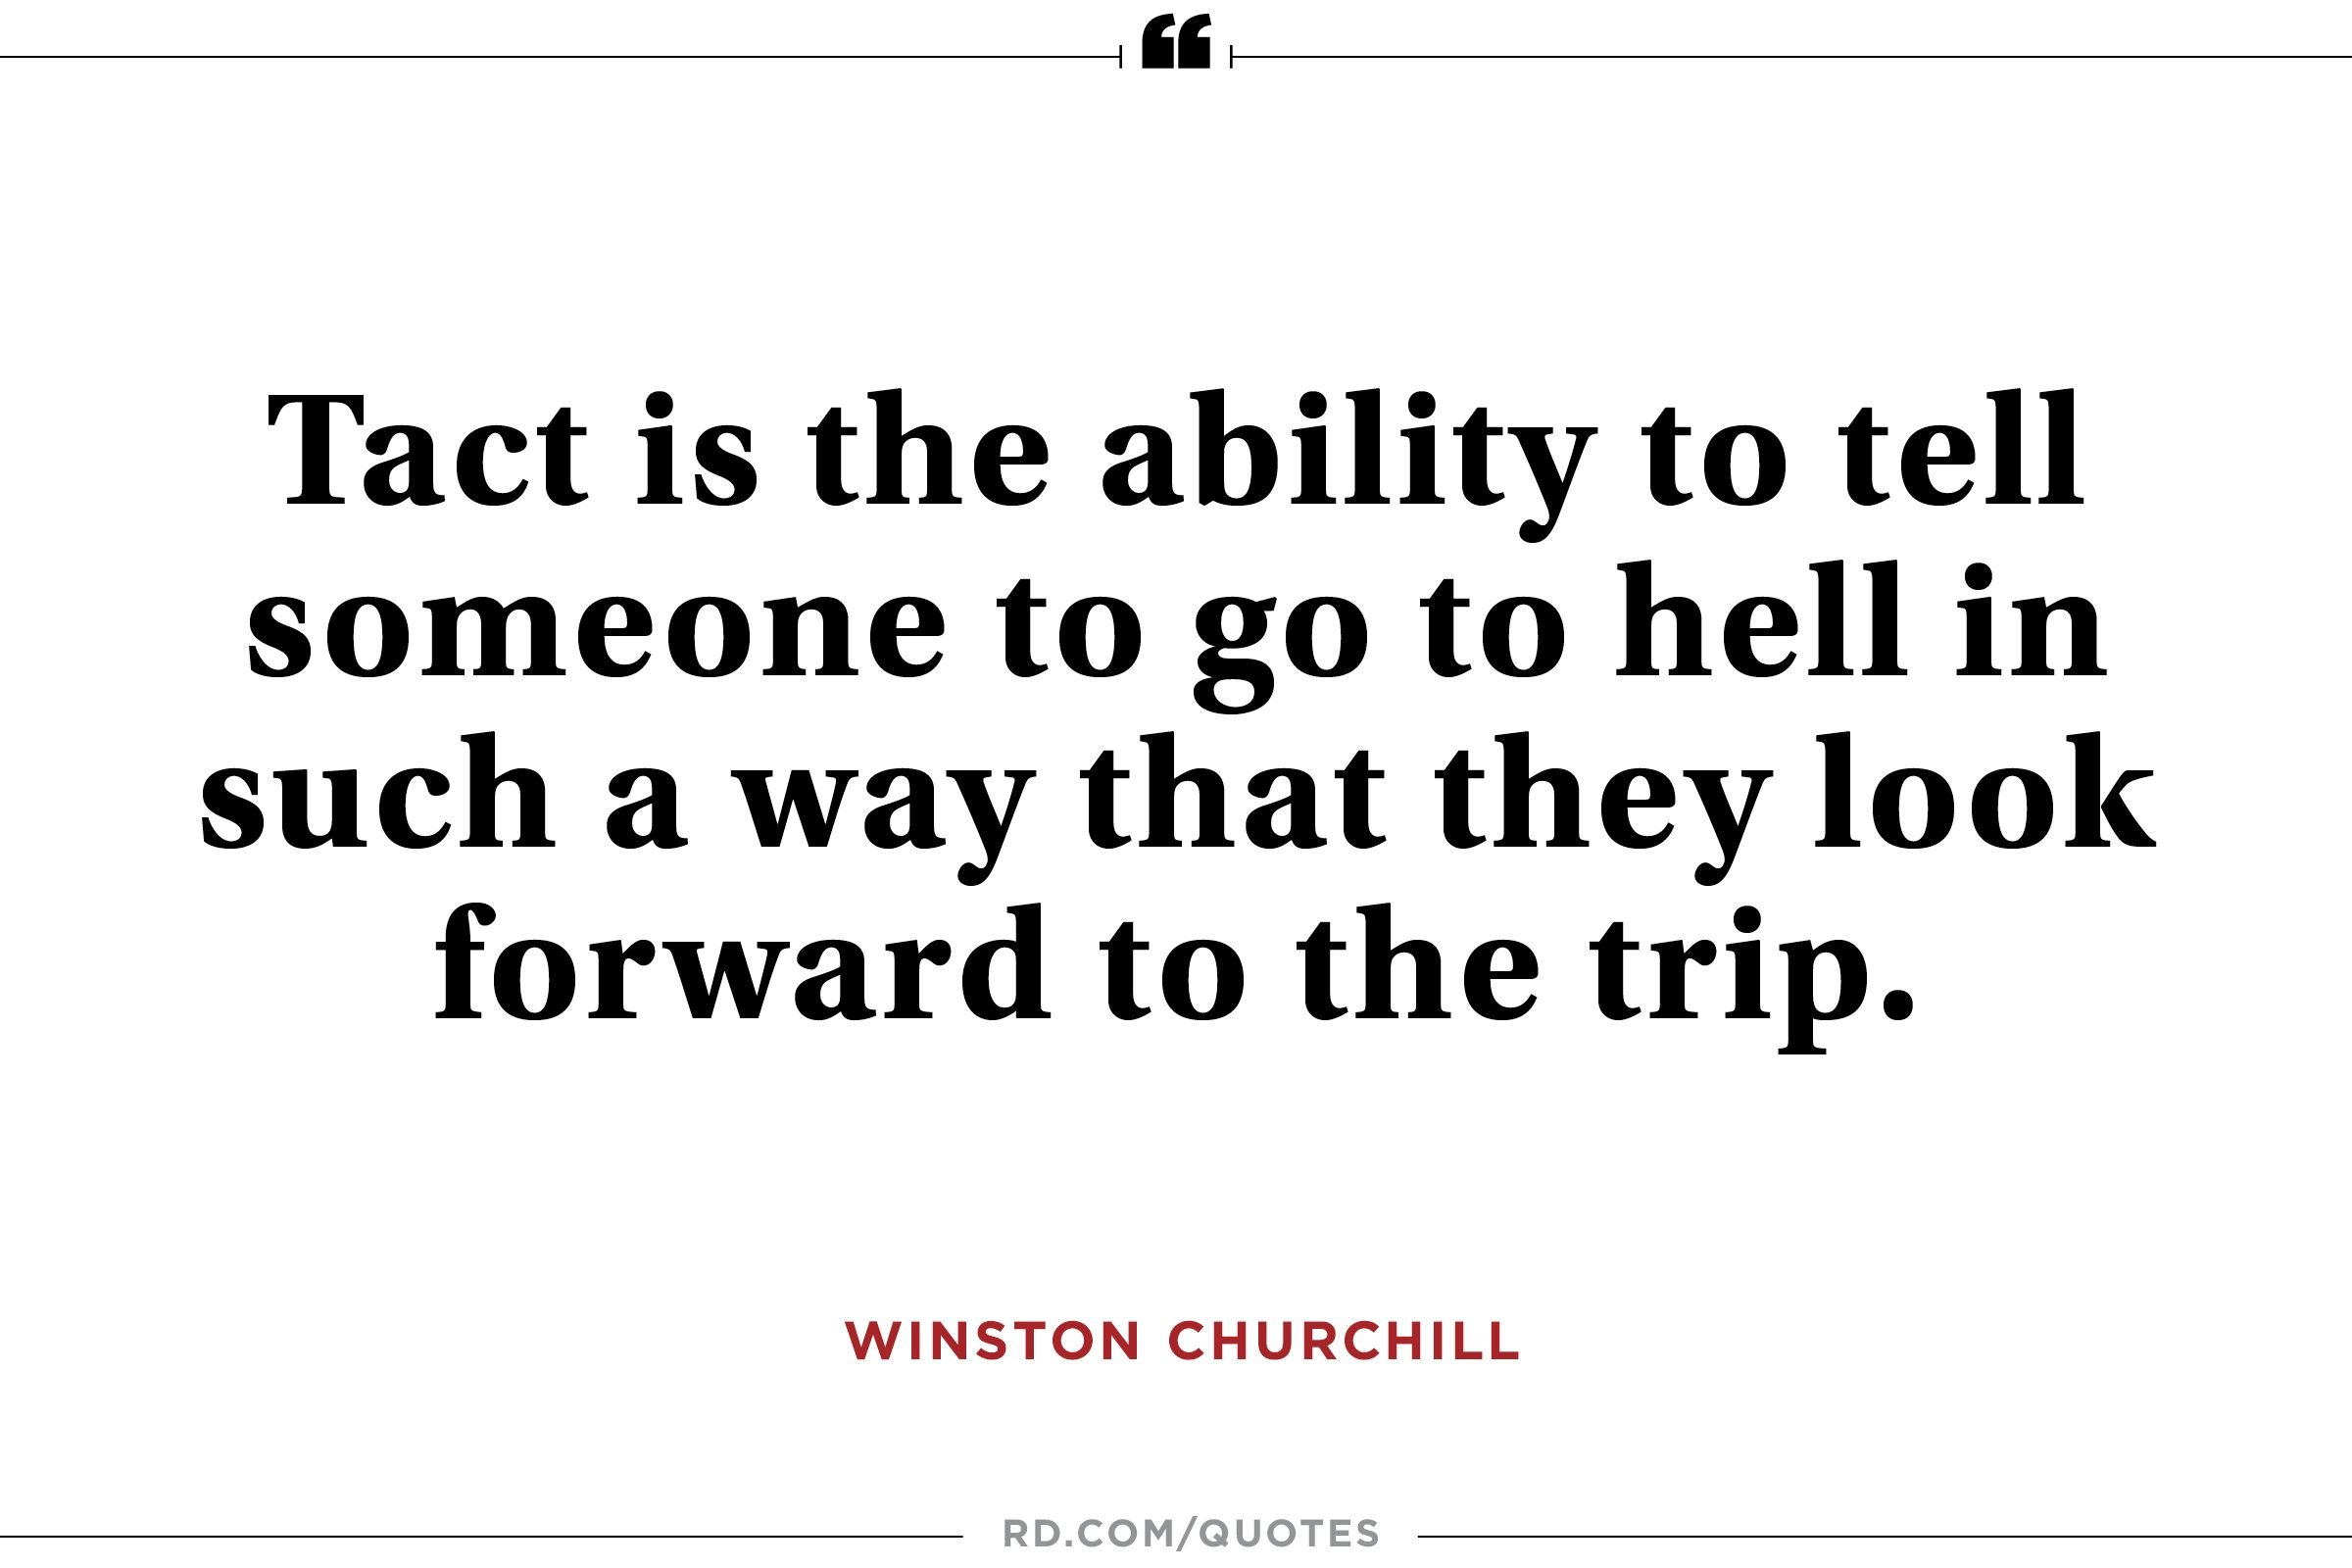 Anonymous Quotes About Friendship Winston Churchill Quote About Friendship Famous Winston Churchill